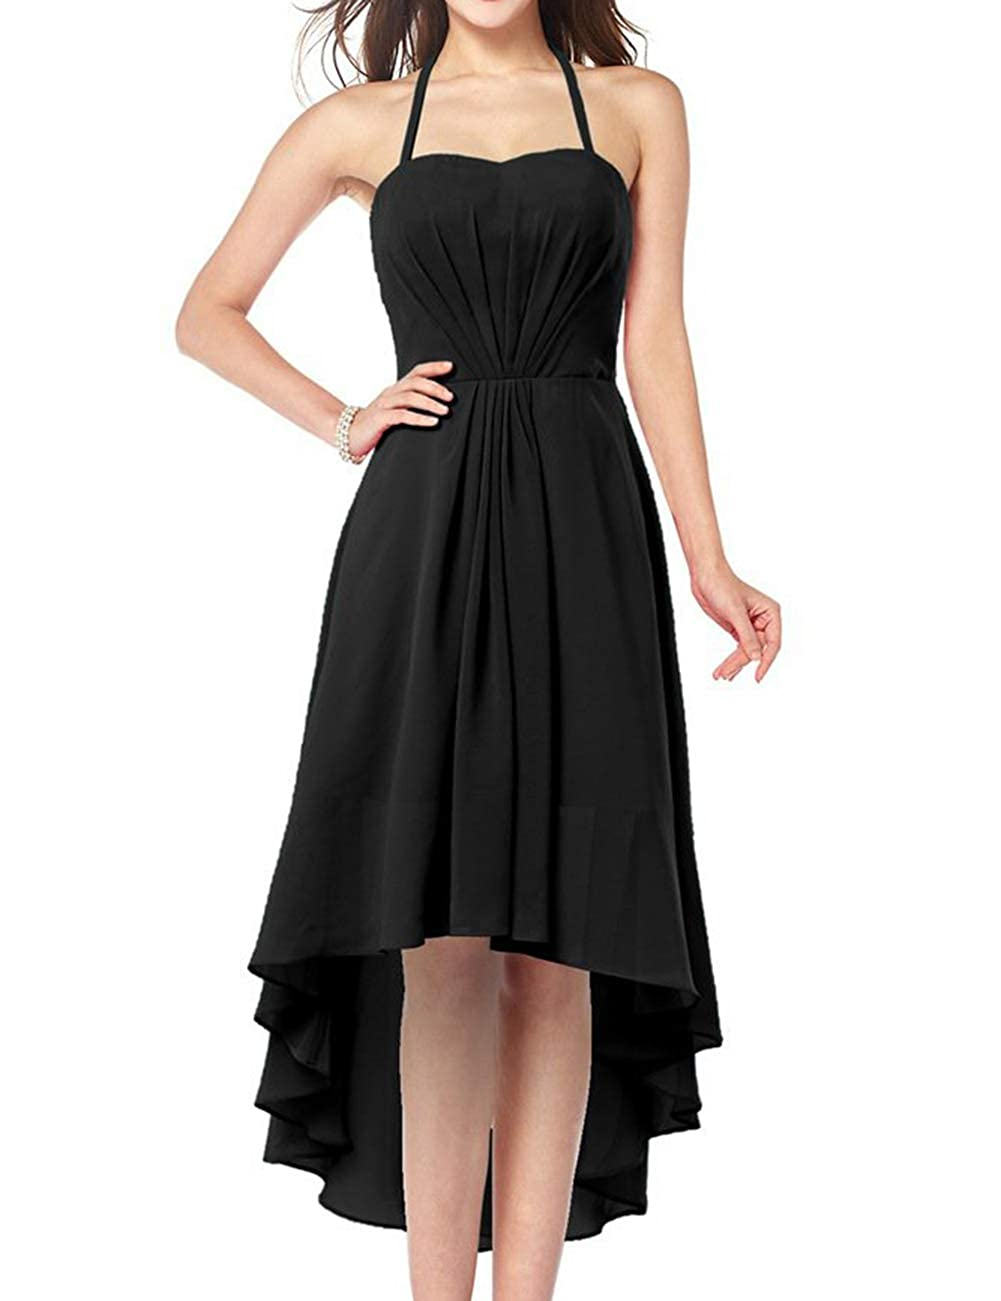 Black Uther Plus Size Bridesmaid Dresses Long Aline Halter Hi Lo Evening Prom Party Gown